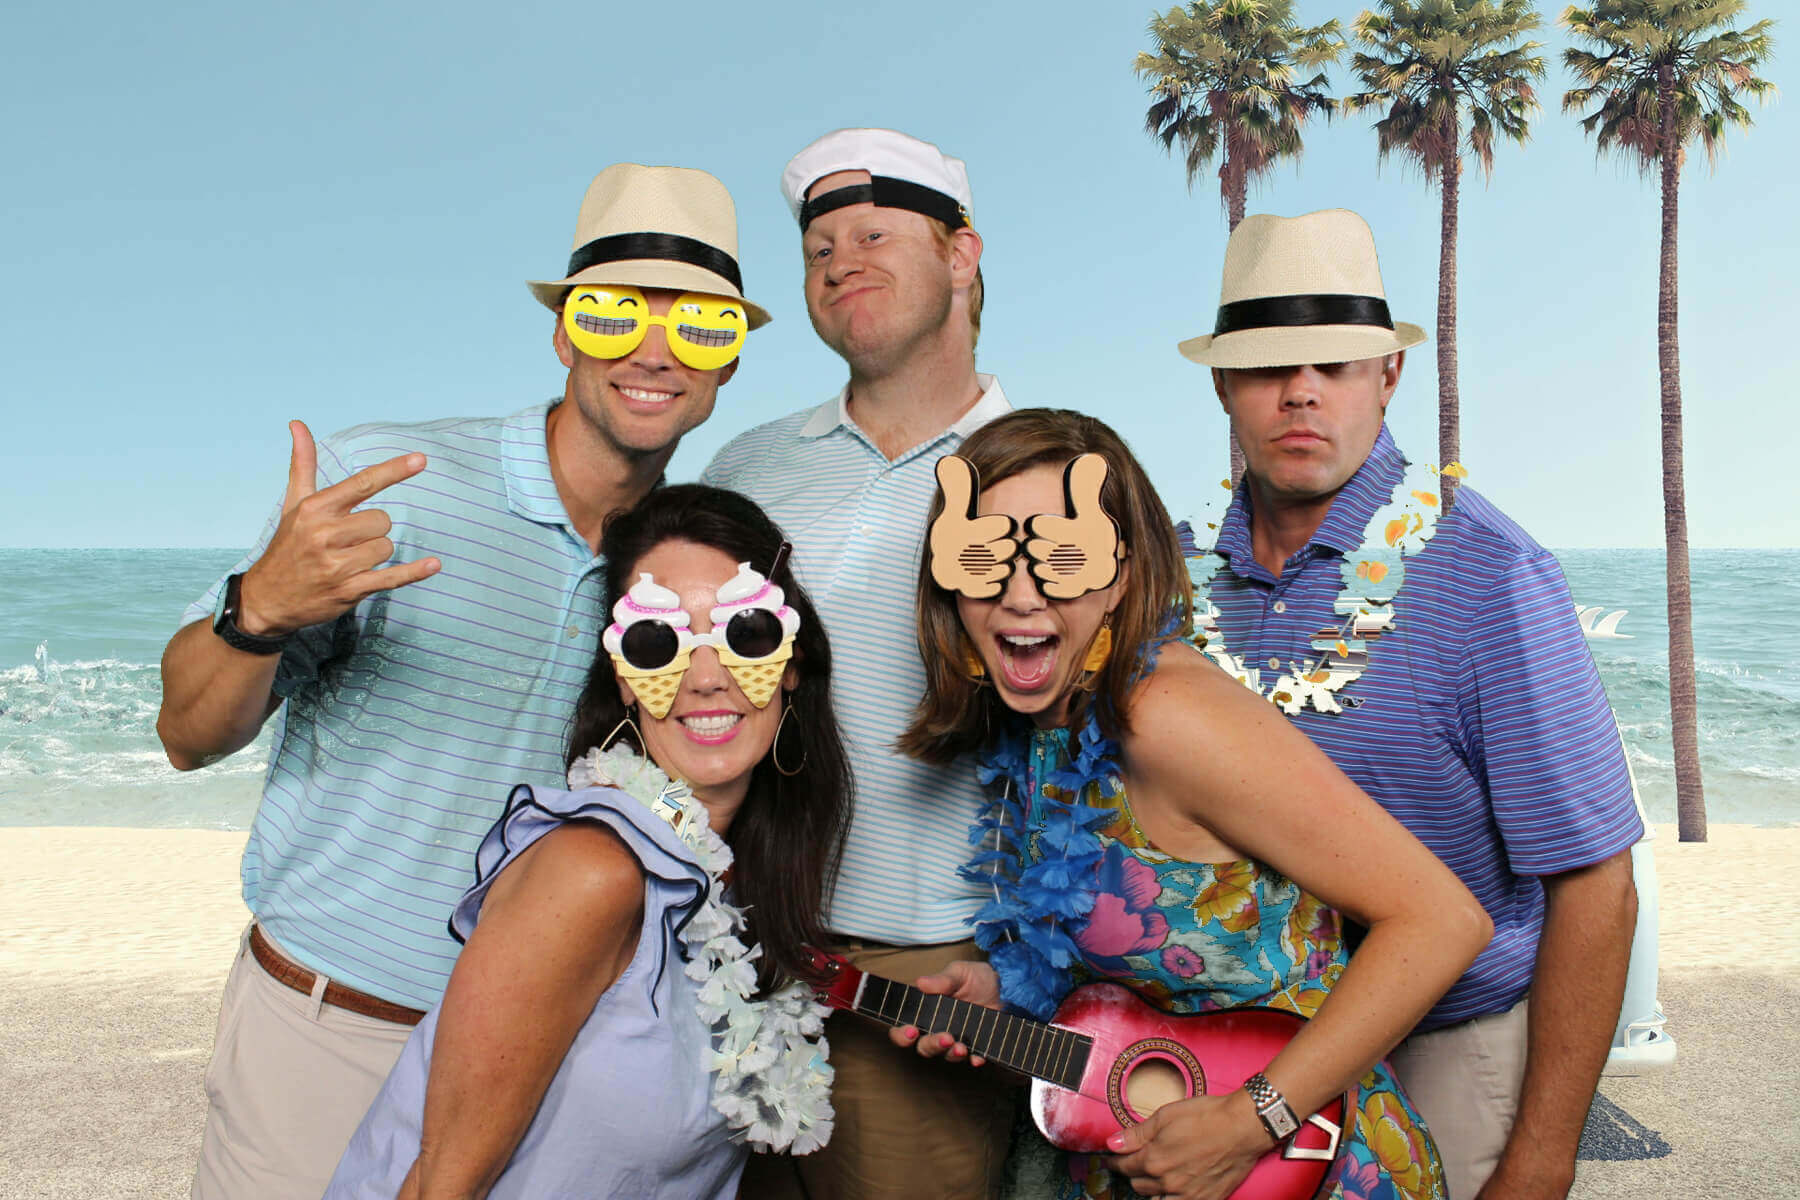 men with hats and women with fun sunglasses pose for photo booth in front of beach background